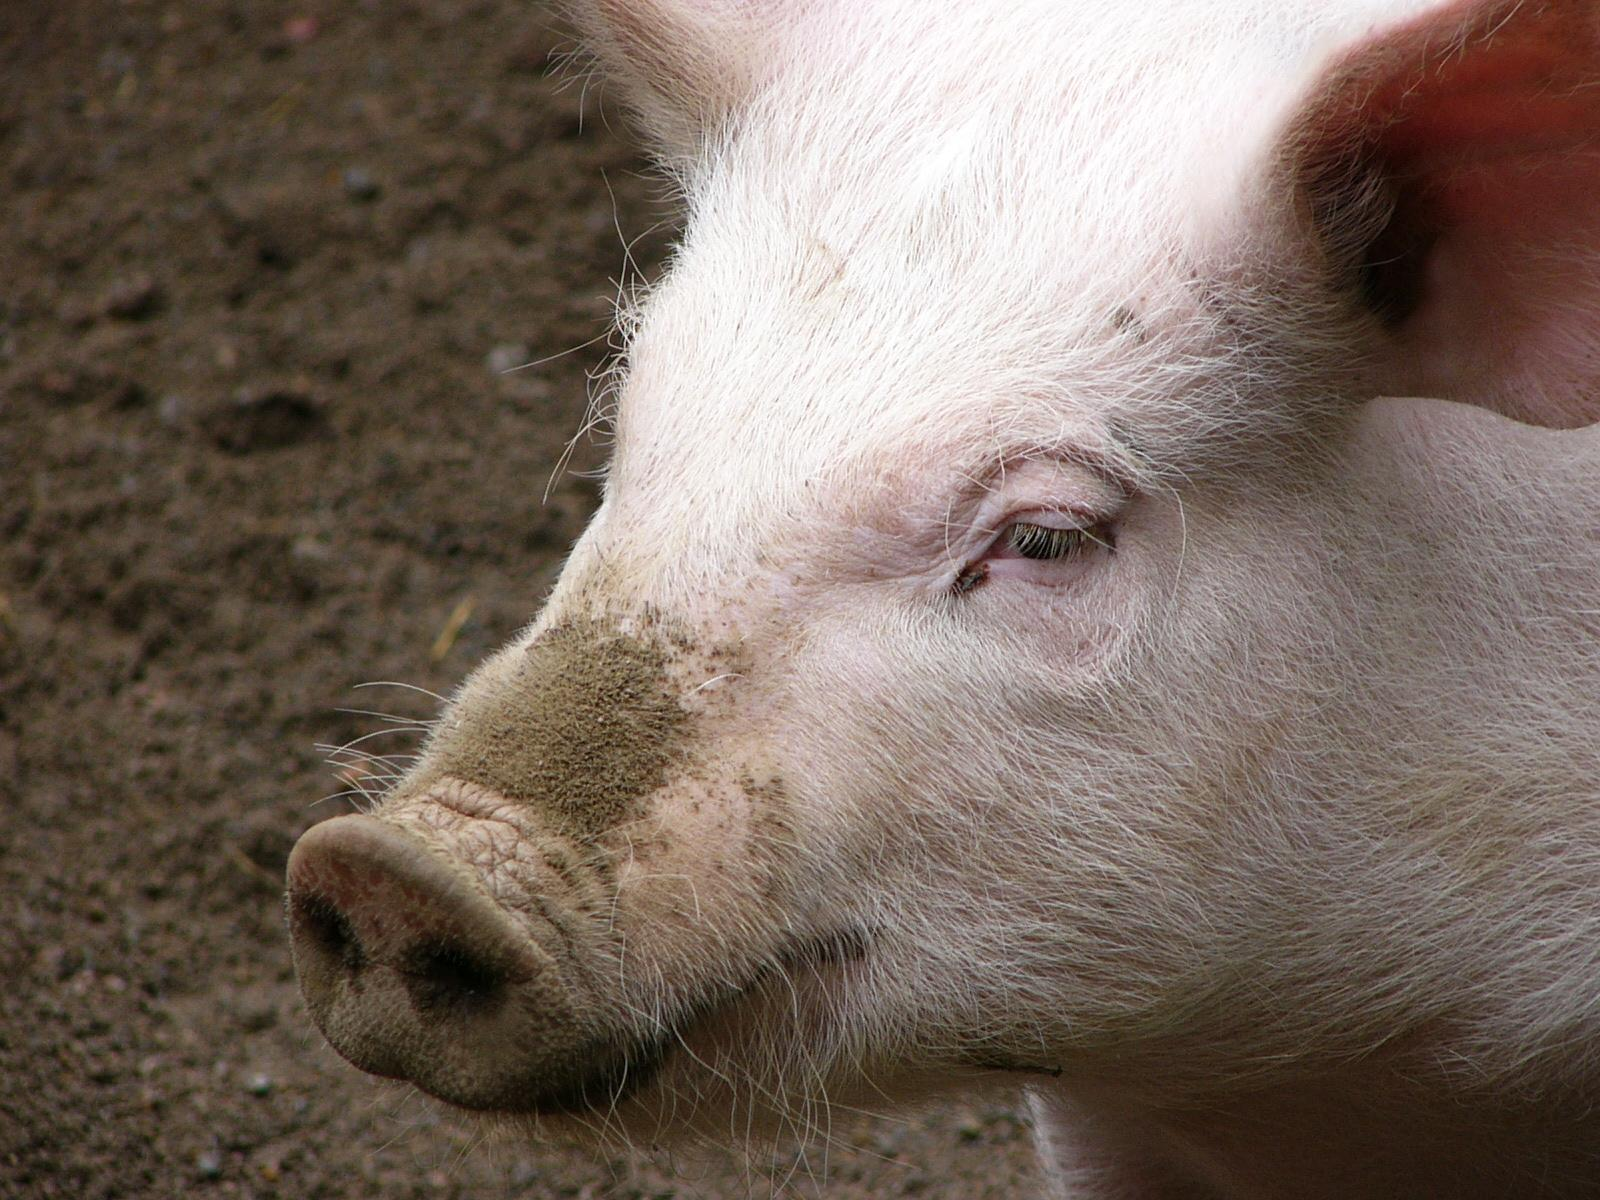 Pig Wallpapers Images and animals Pig pictures 712 1600x1200